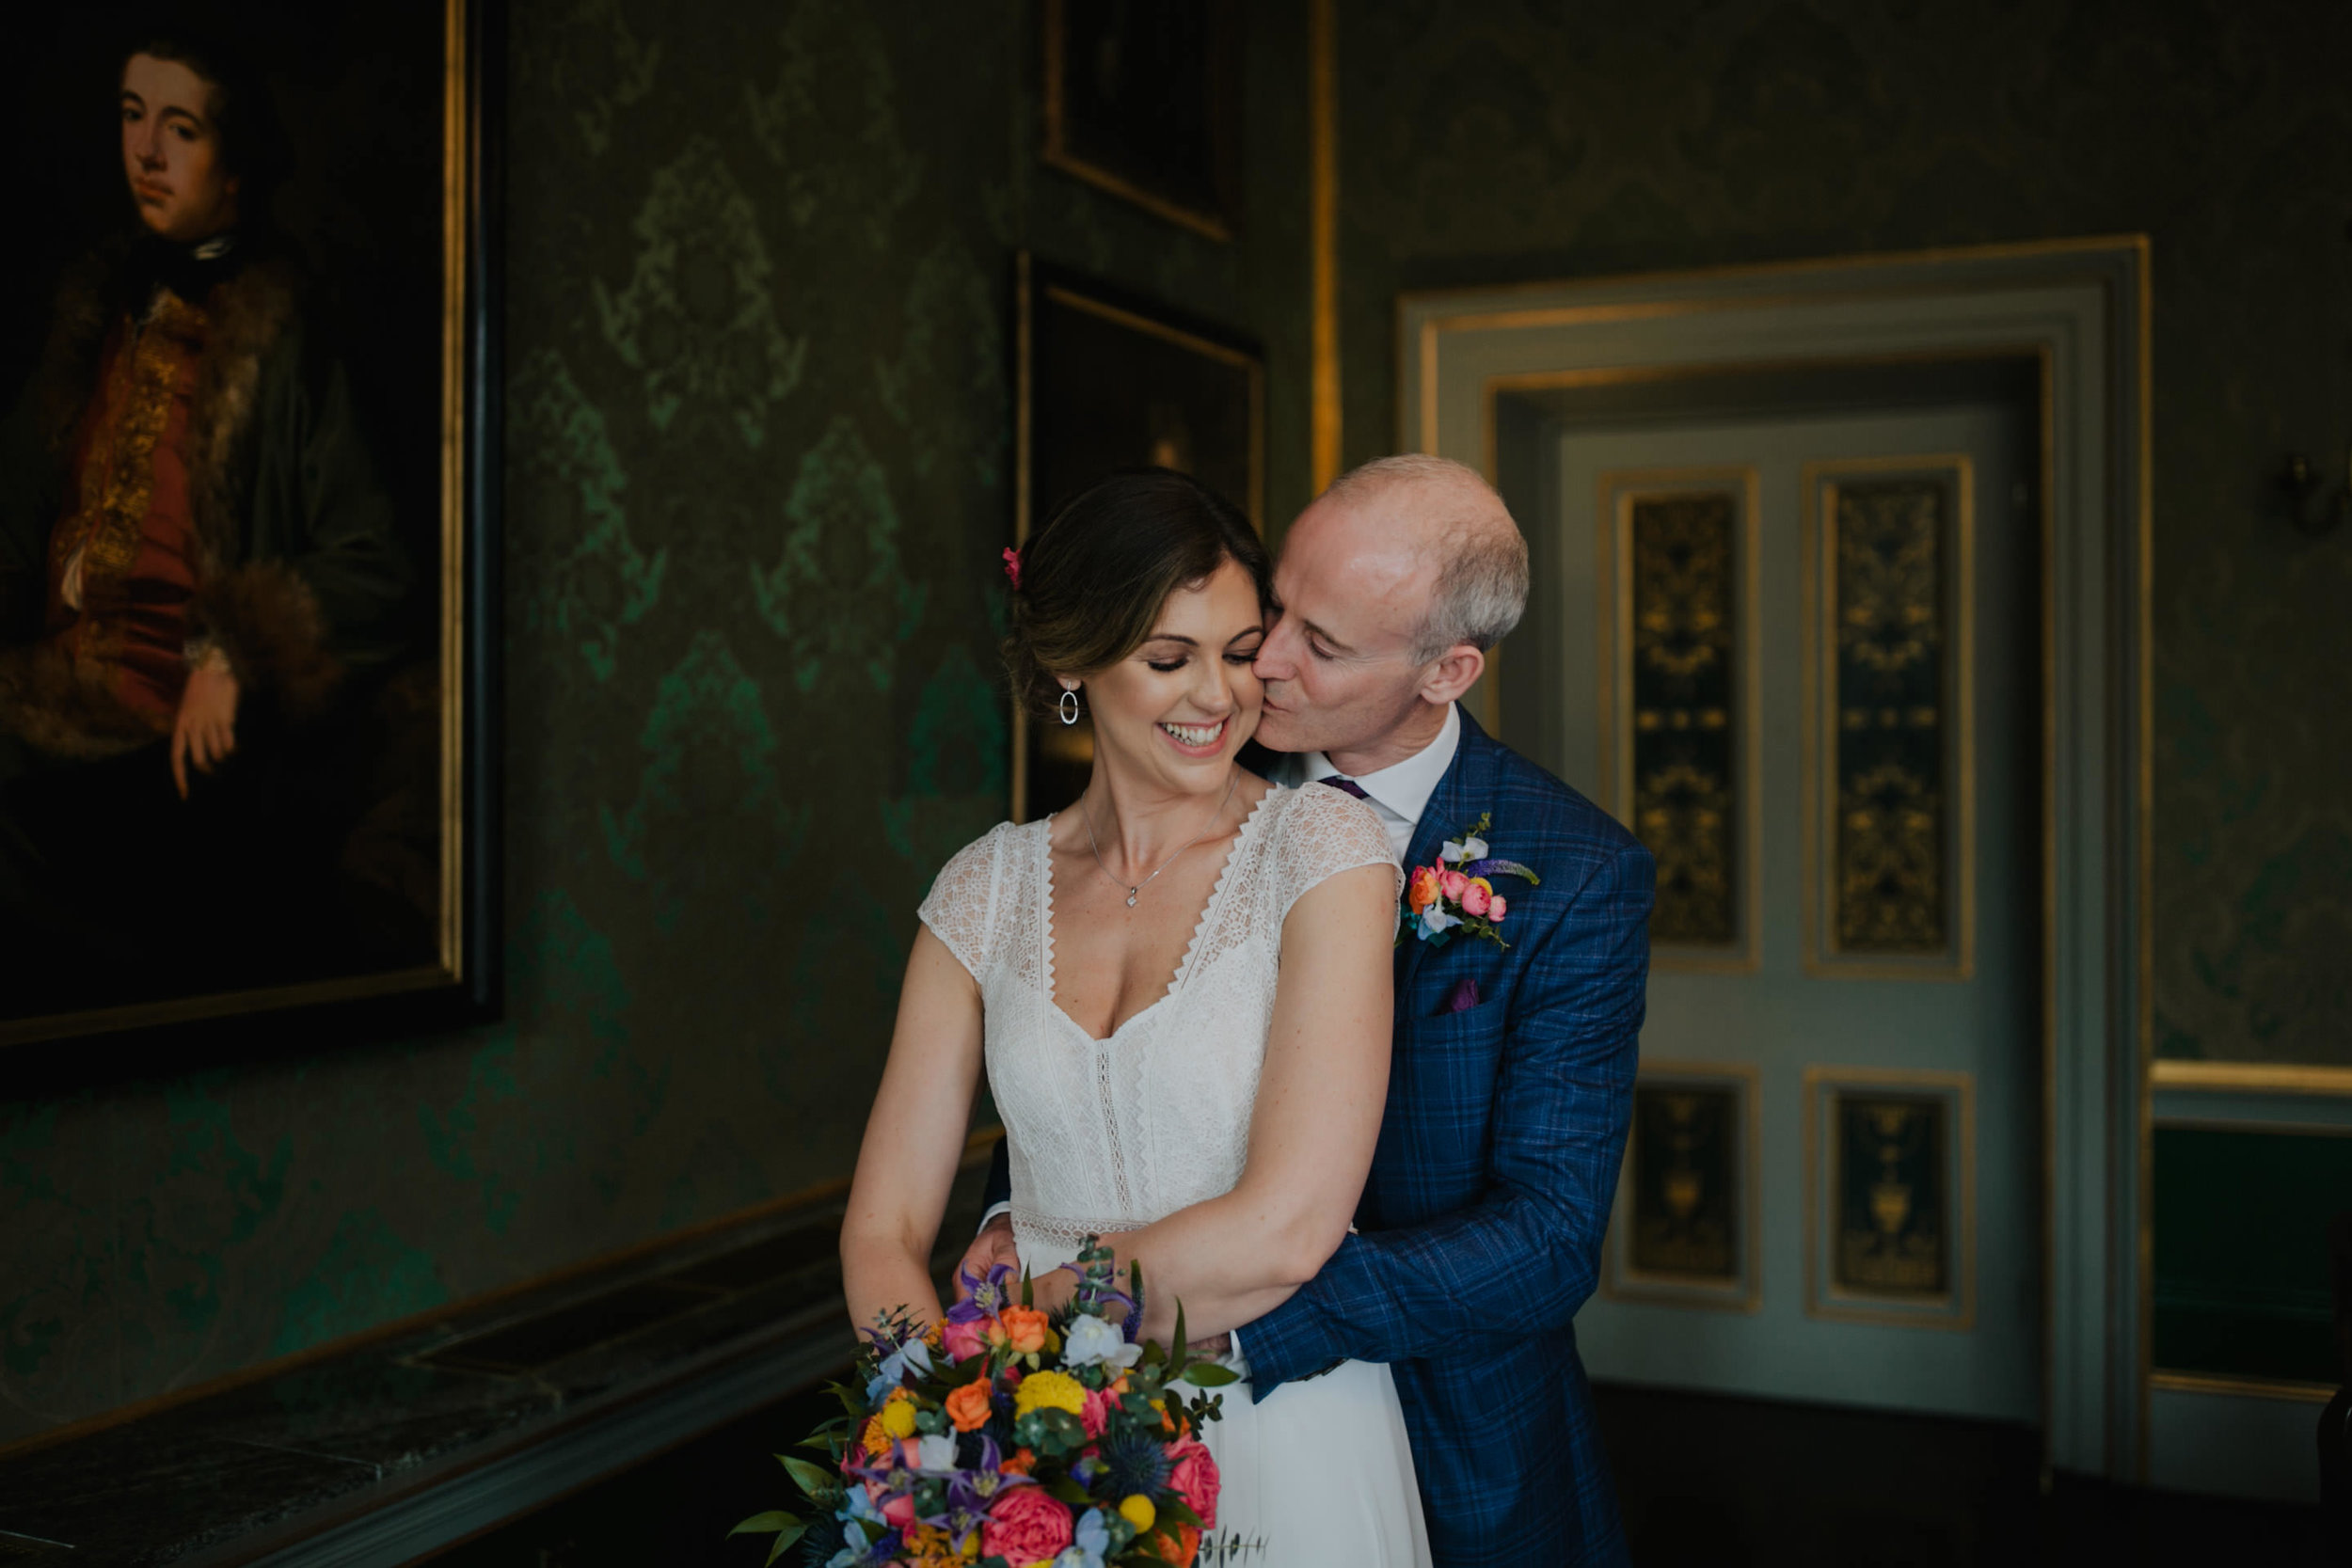 s&r_the_shelbourne_hotel_wedding_photographer_livia_figueiredo_16.jpg